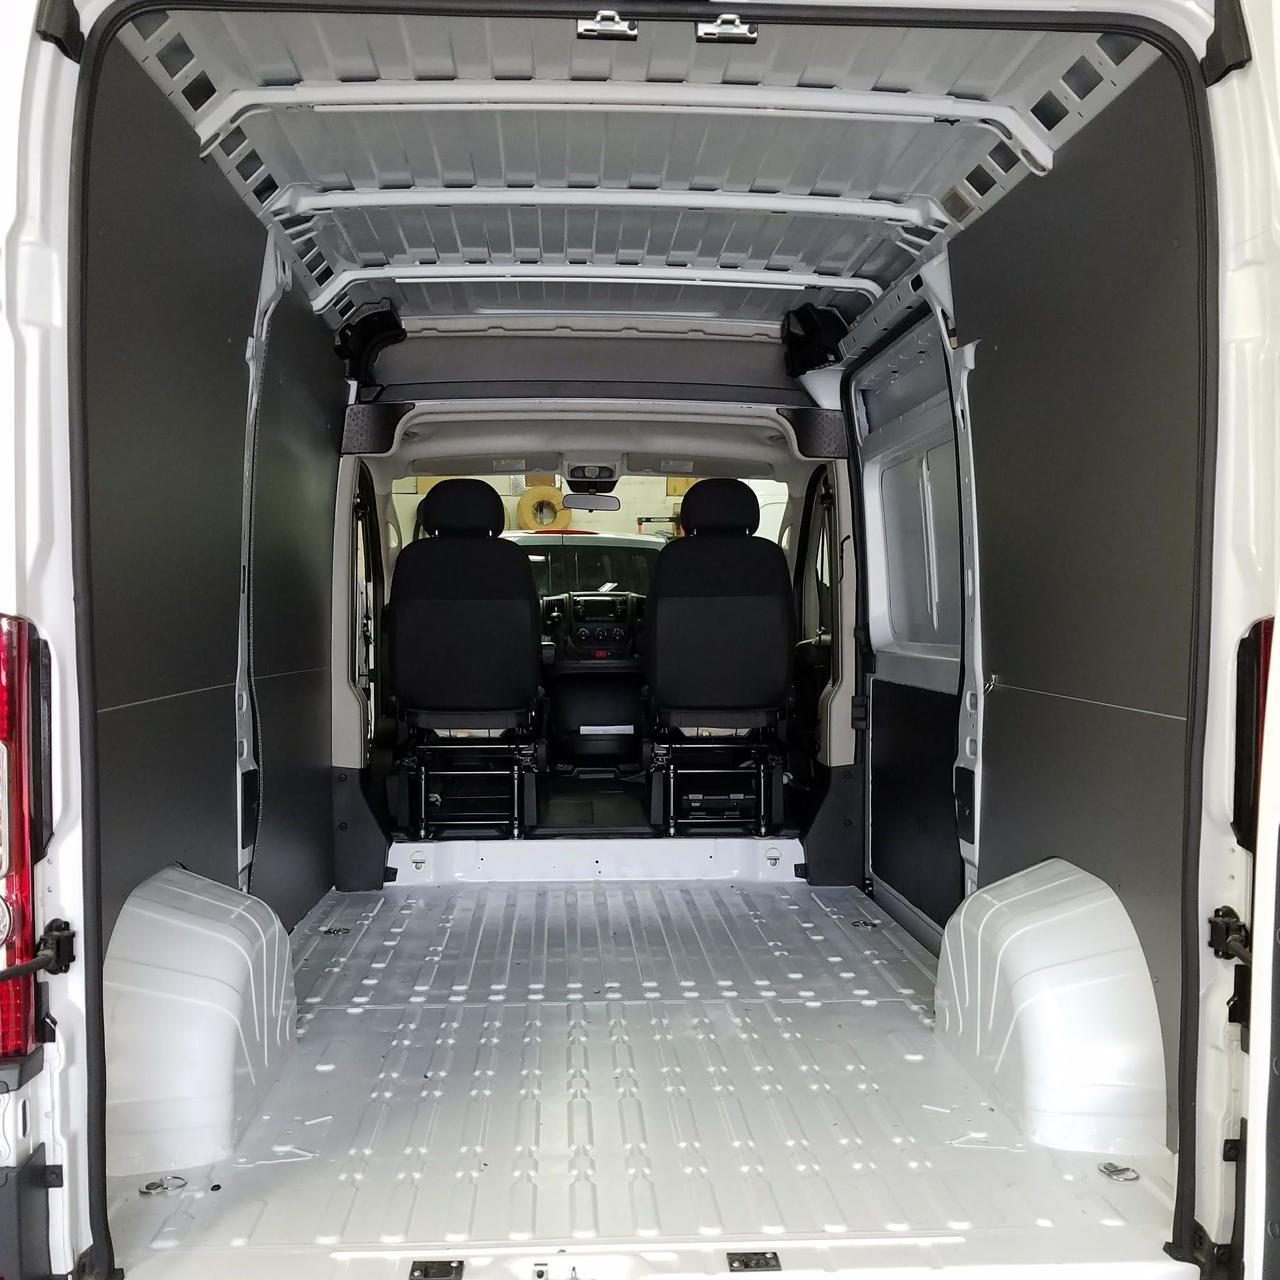 Insulated Promaster Van Wall Liners Advantage Outfitters